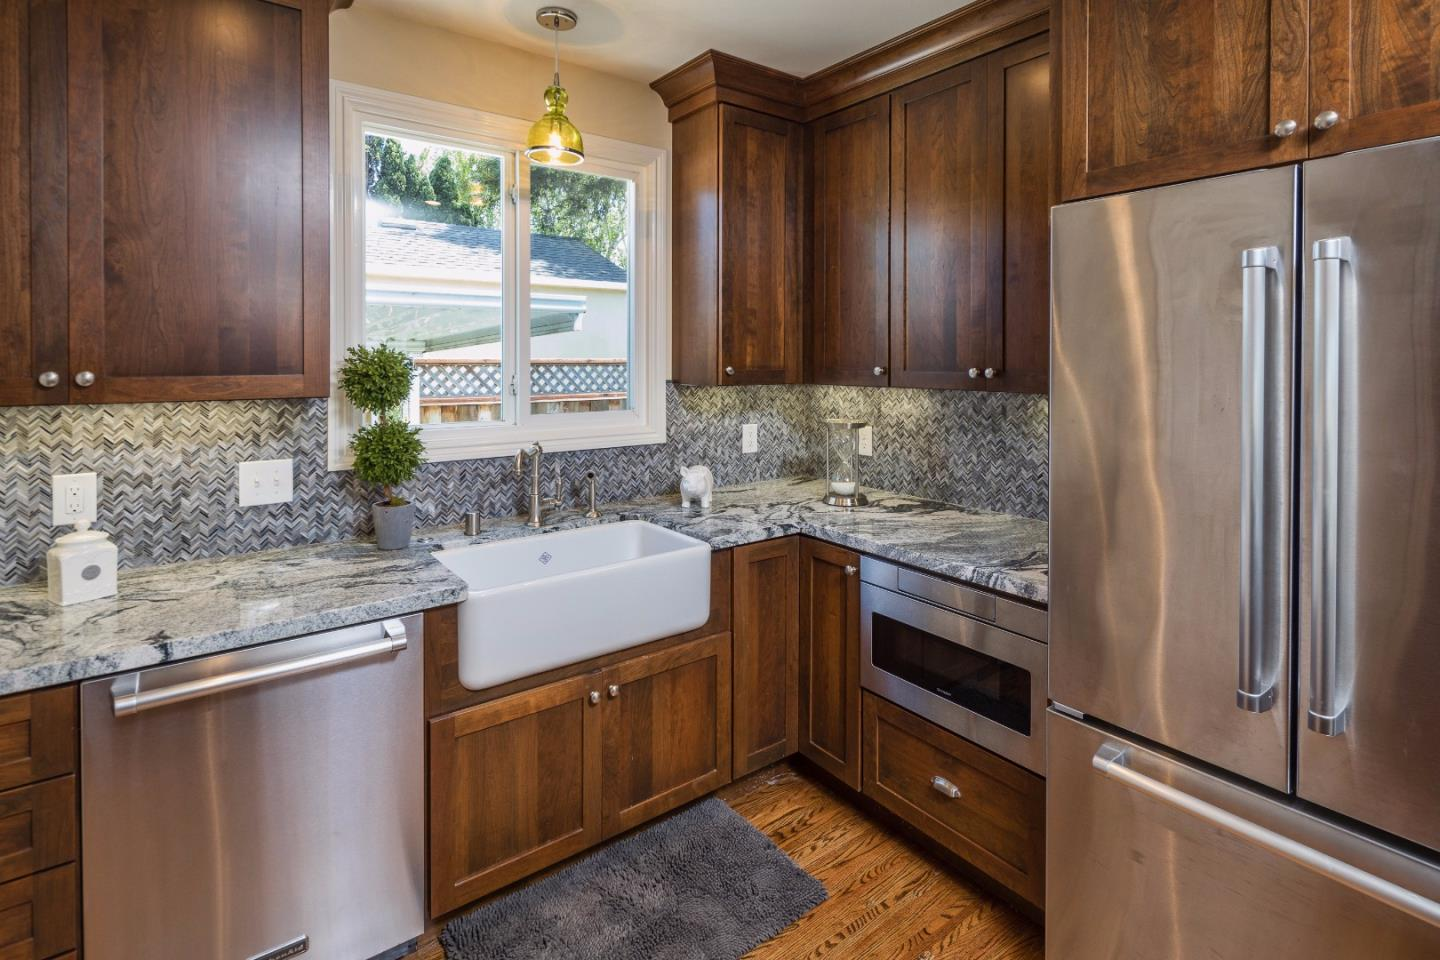 Additional photo for property listing at 917 Linden Ave  BURLINGAME, CALIFORNIA 94010